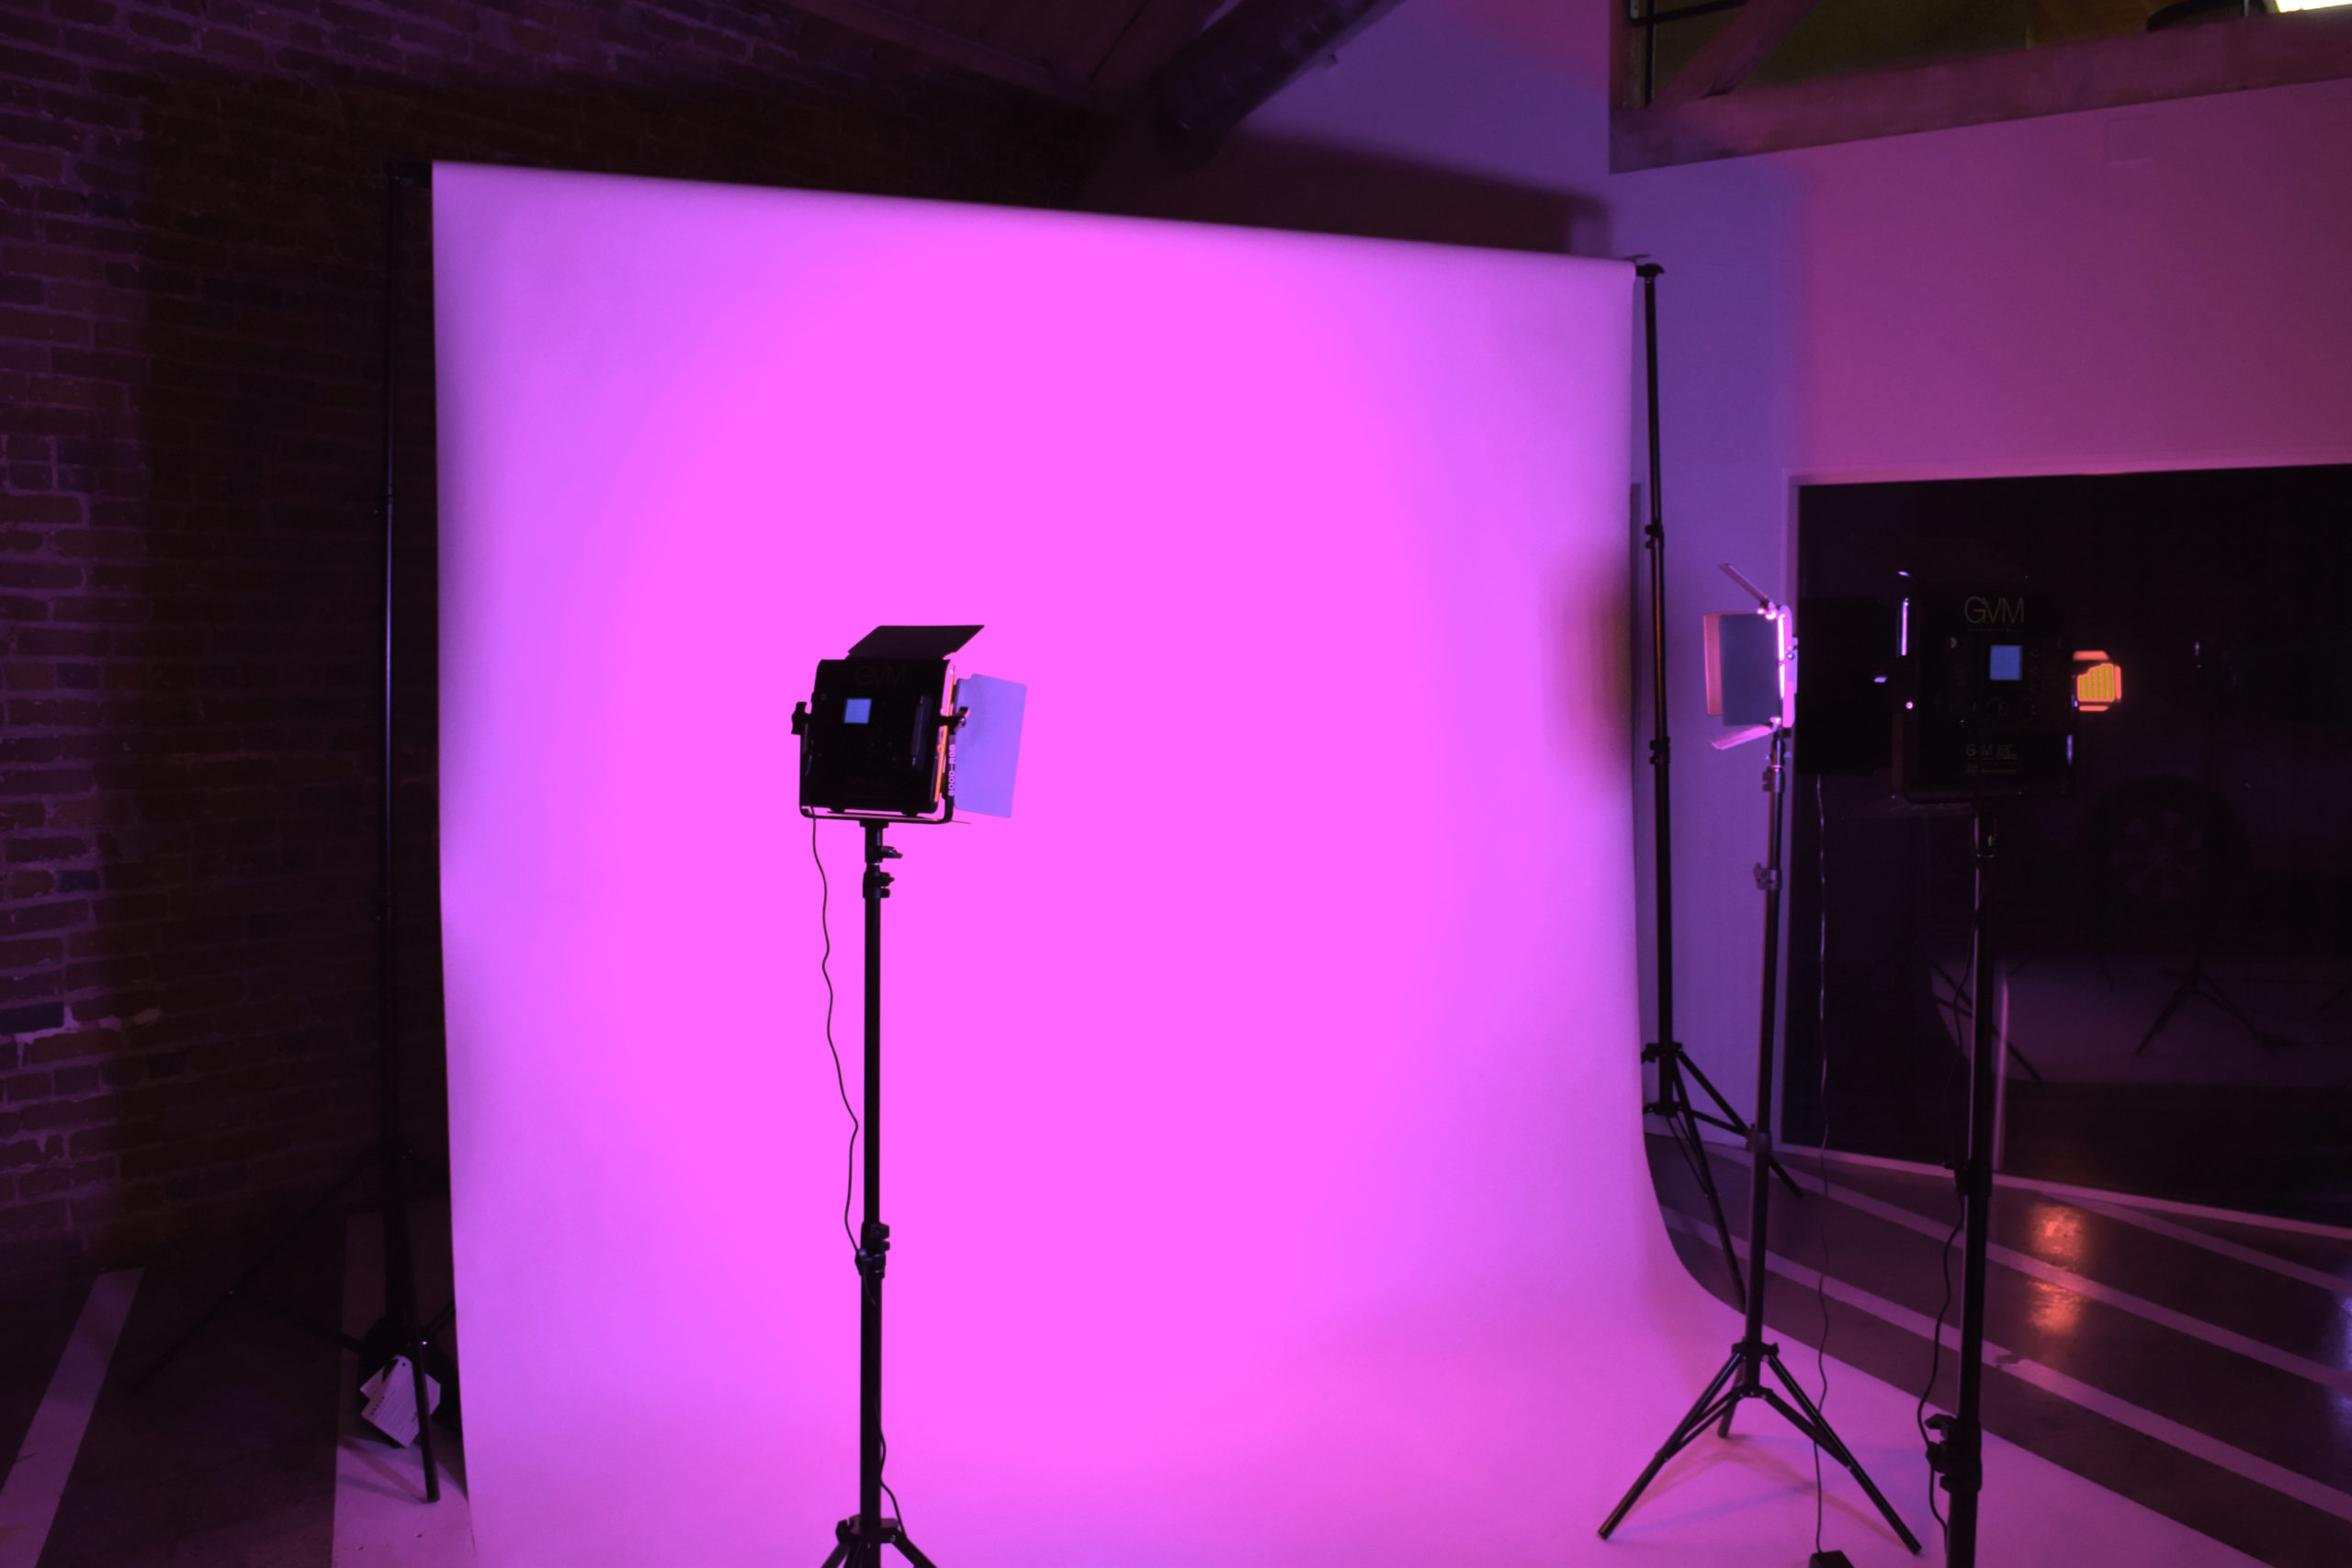 MGS Photoshoots White Seamless Backdrop with Pink Lights